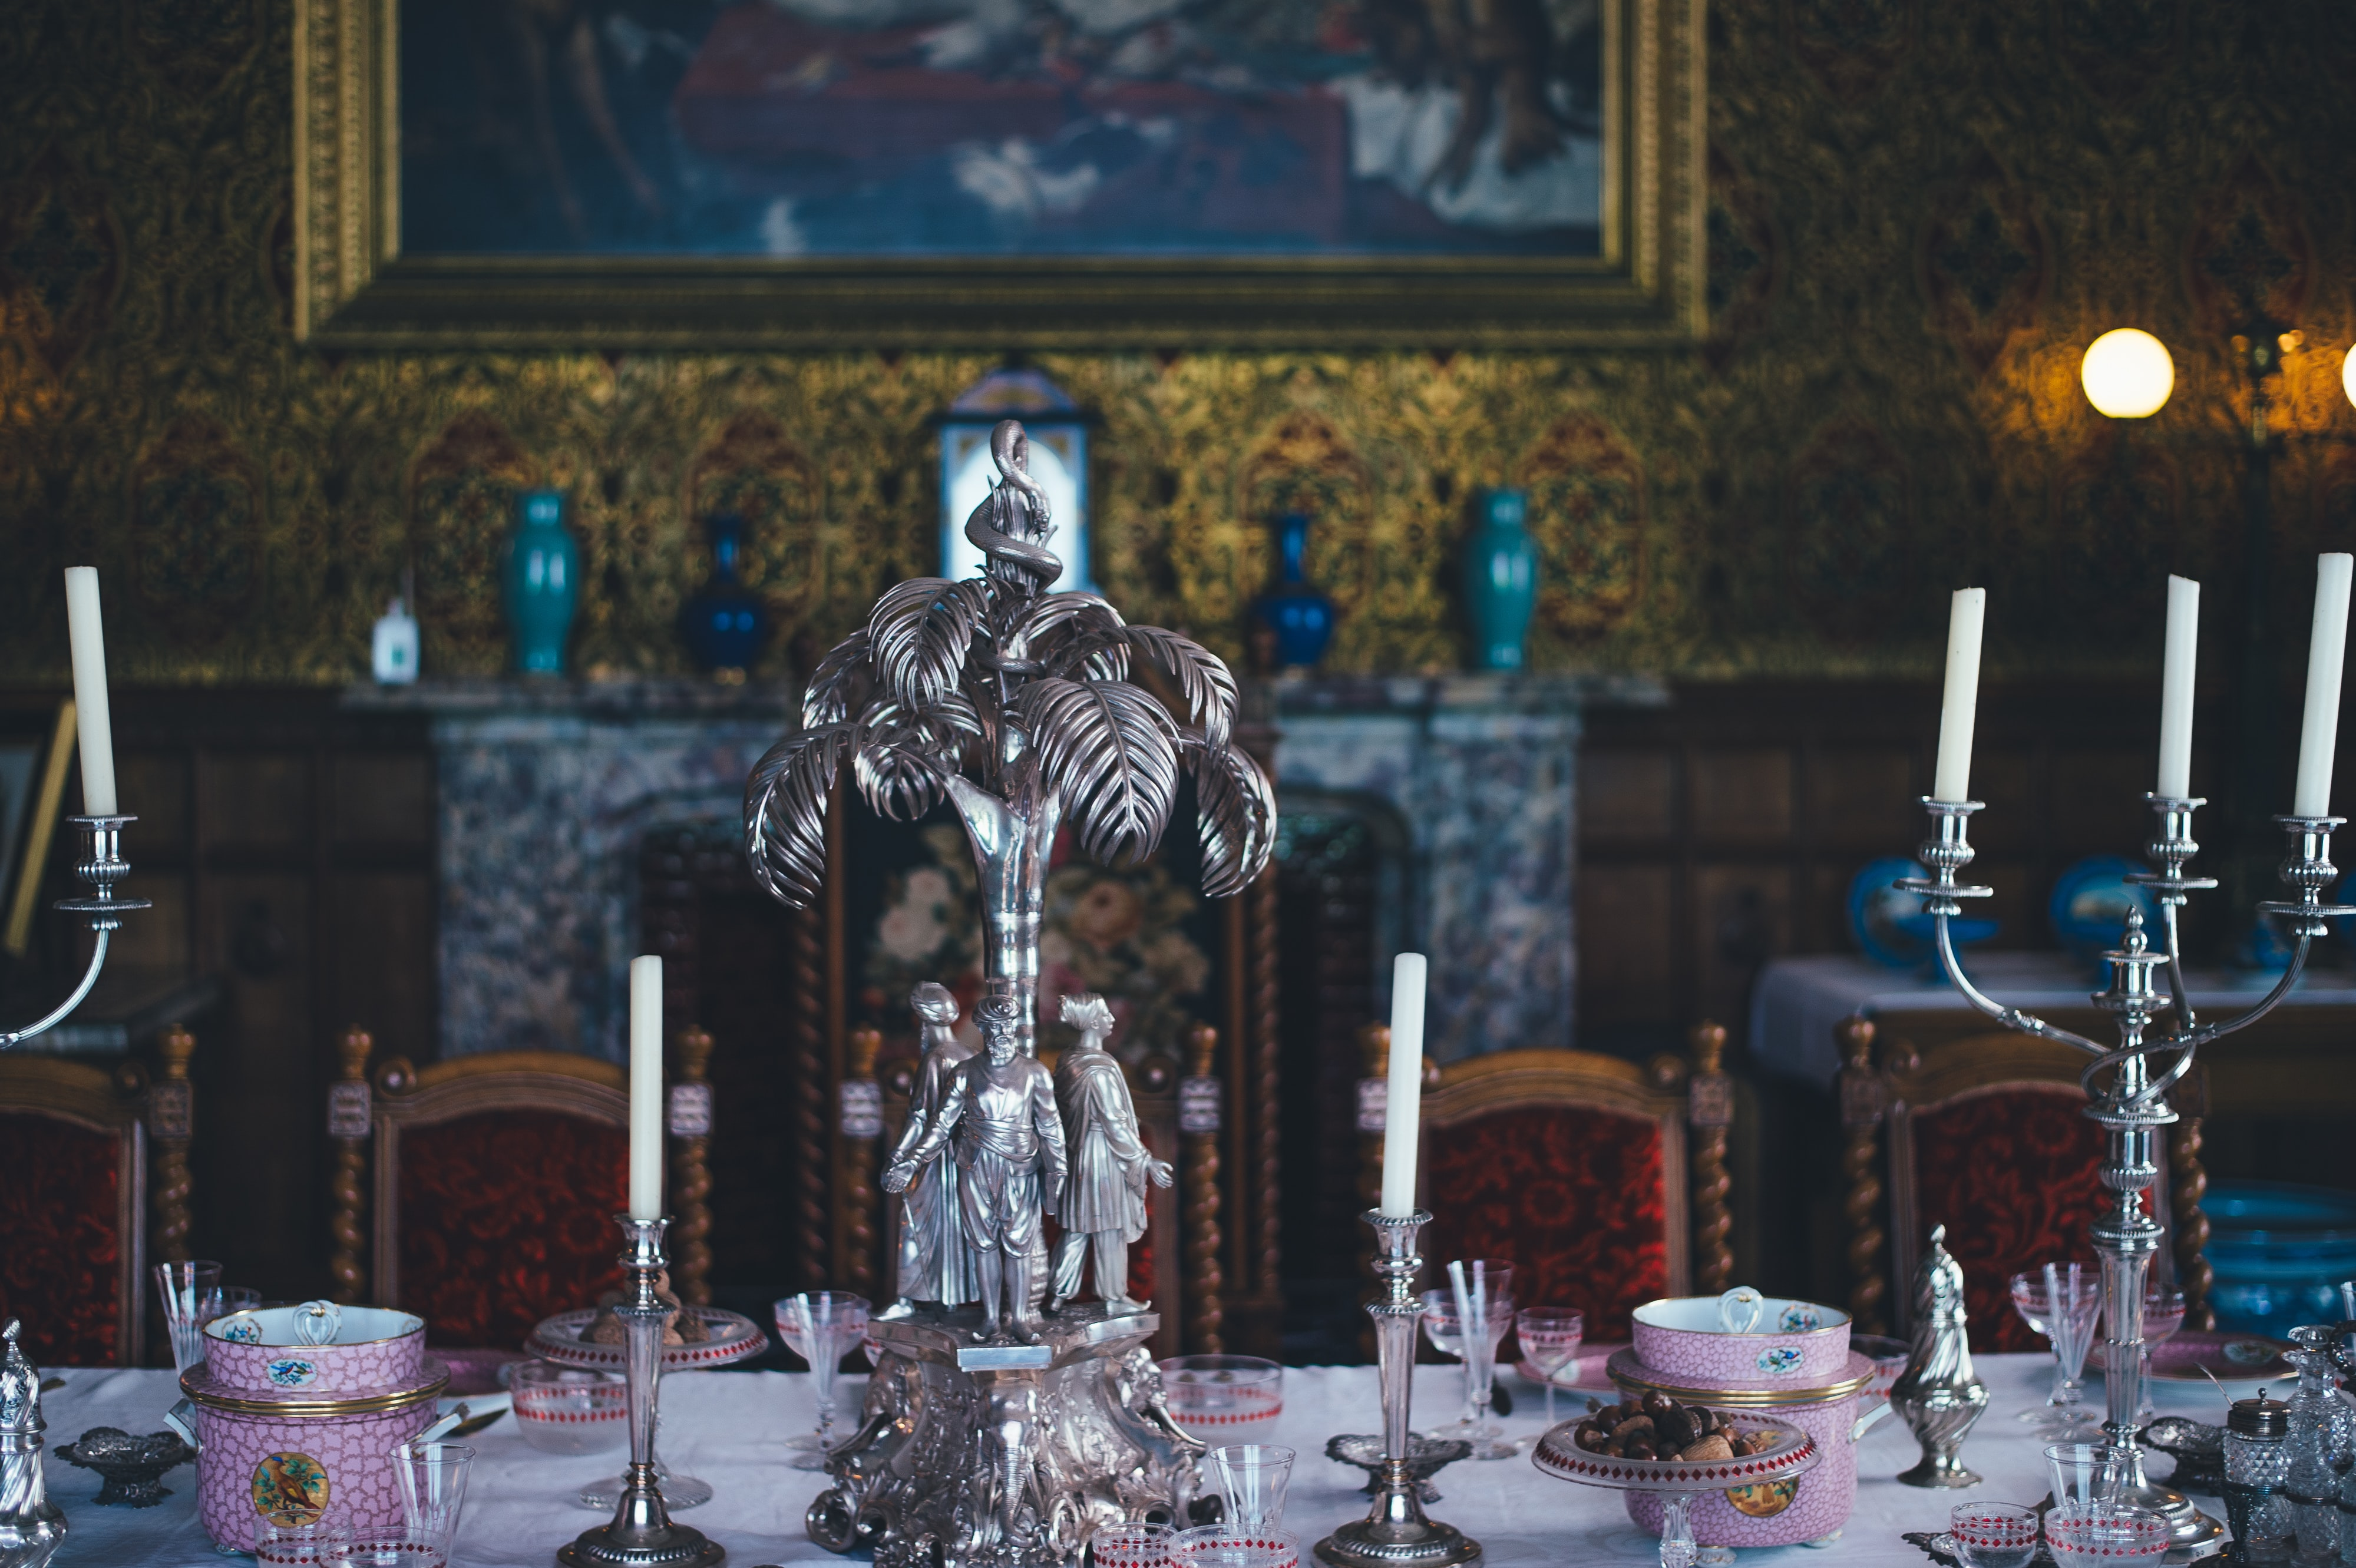 A set table with ornate silver candlesticks and elegant tableware in a Victorian interior